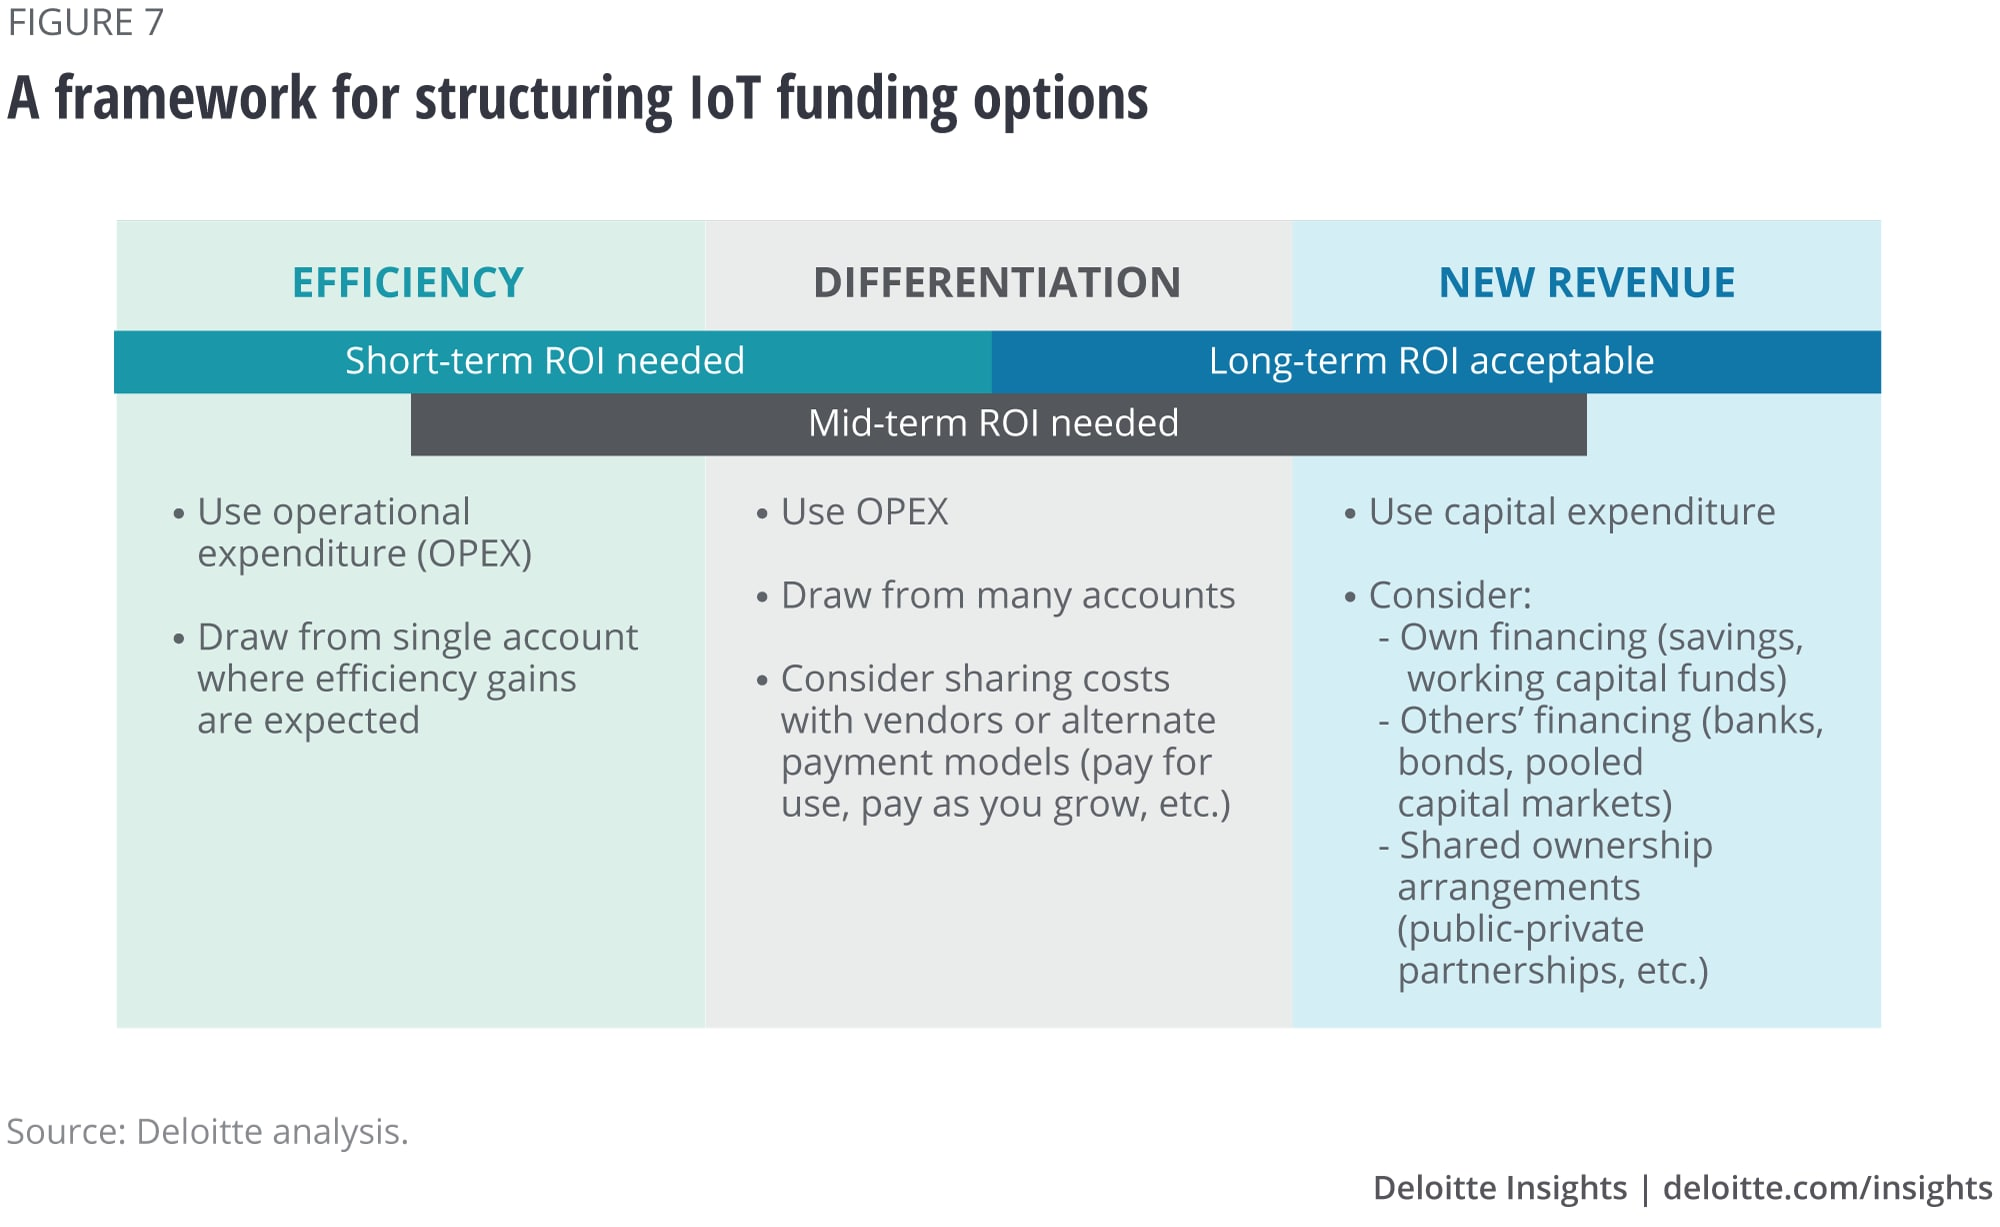 A framework for structuring IoT funding options